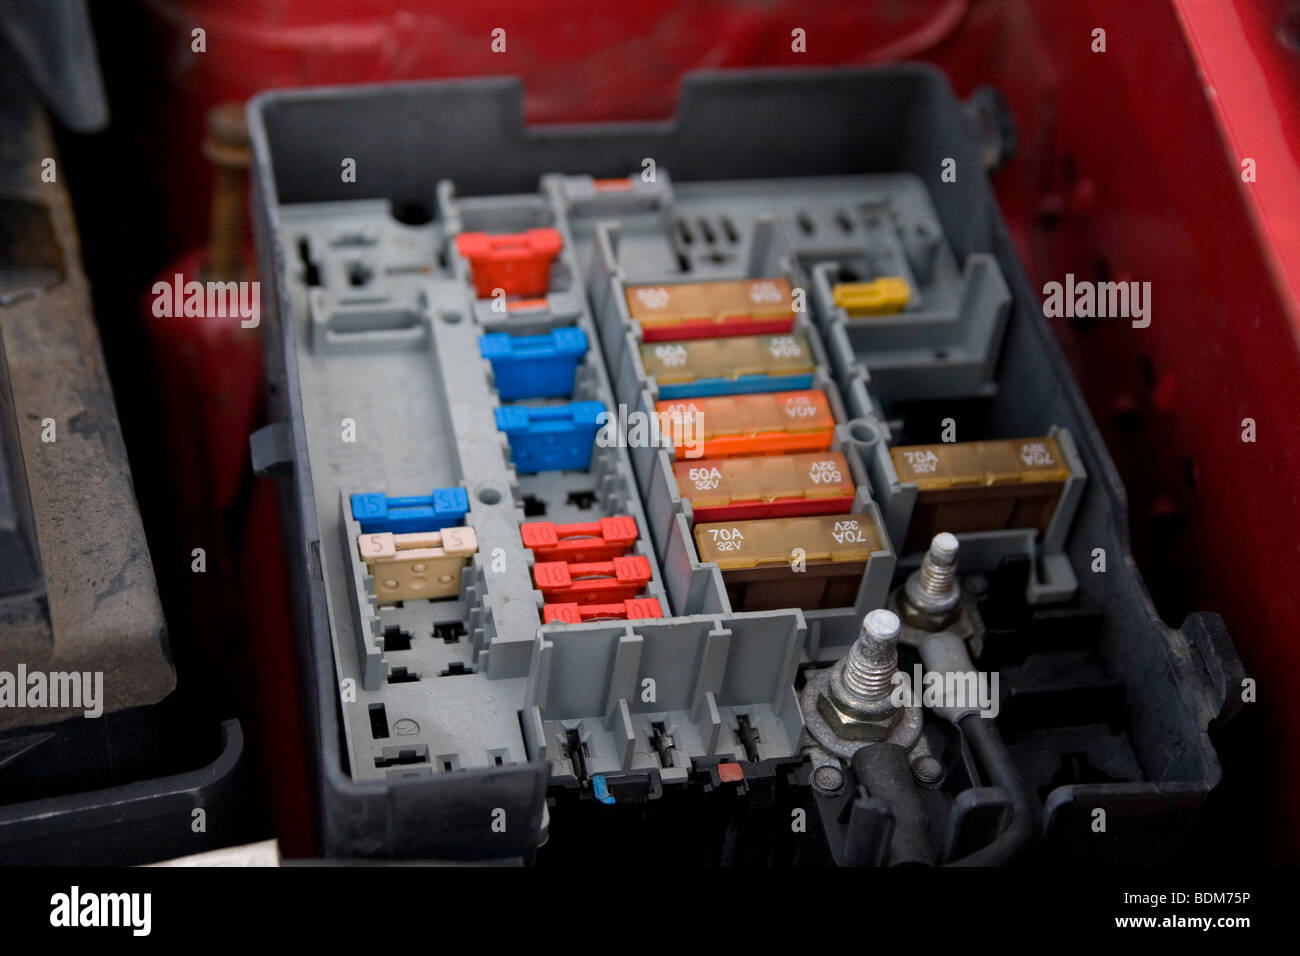 hight resolution of citroen berlingo fuse box stock photo 25645586 alamy citroen fuse box layout citroen berlingo fuse box